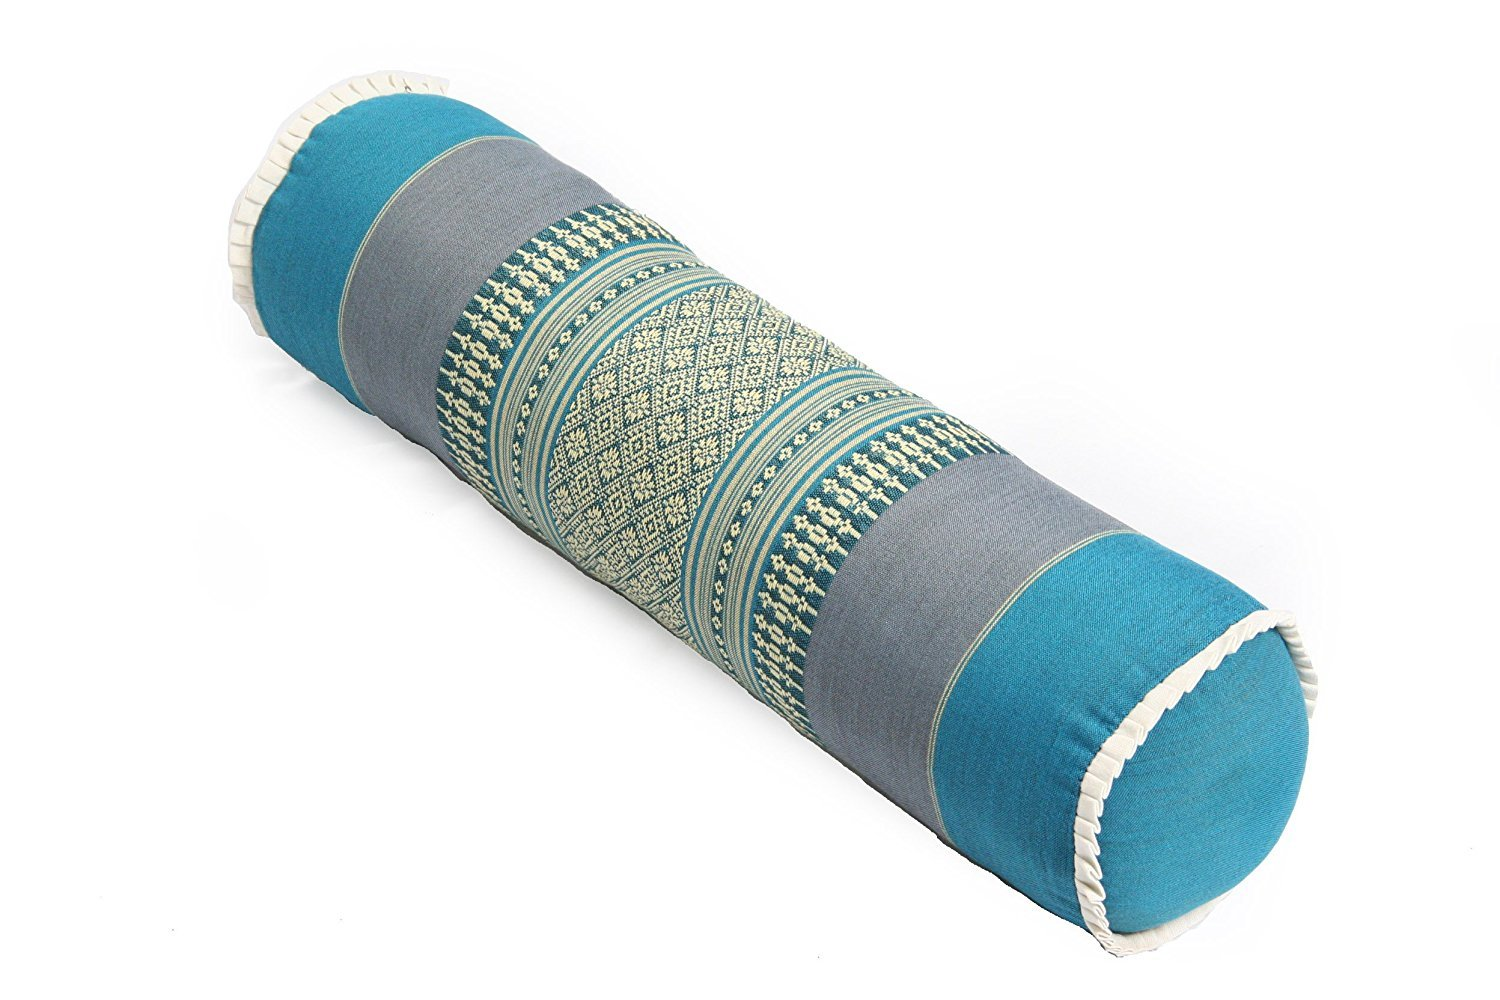 Thailand: Bolster Pillow Blue, Striped Thailand, Size: 19.5''x 5.5'' inches By Conserve Brand